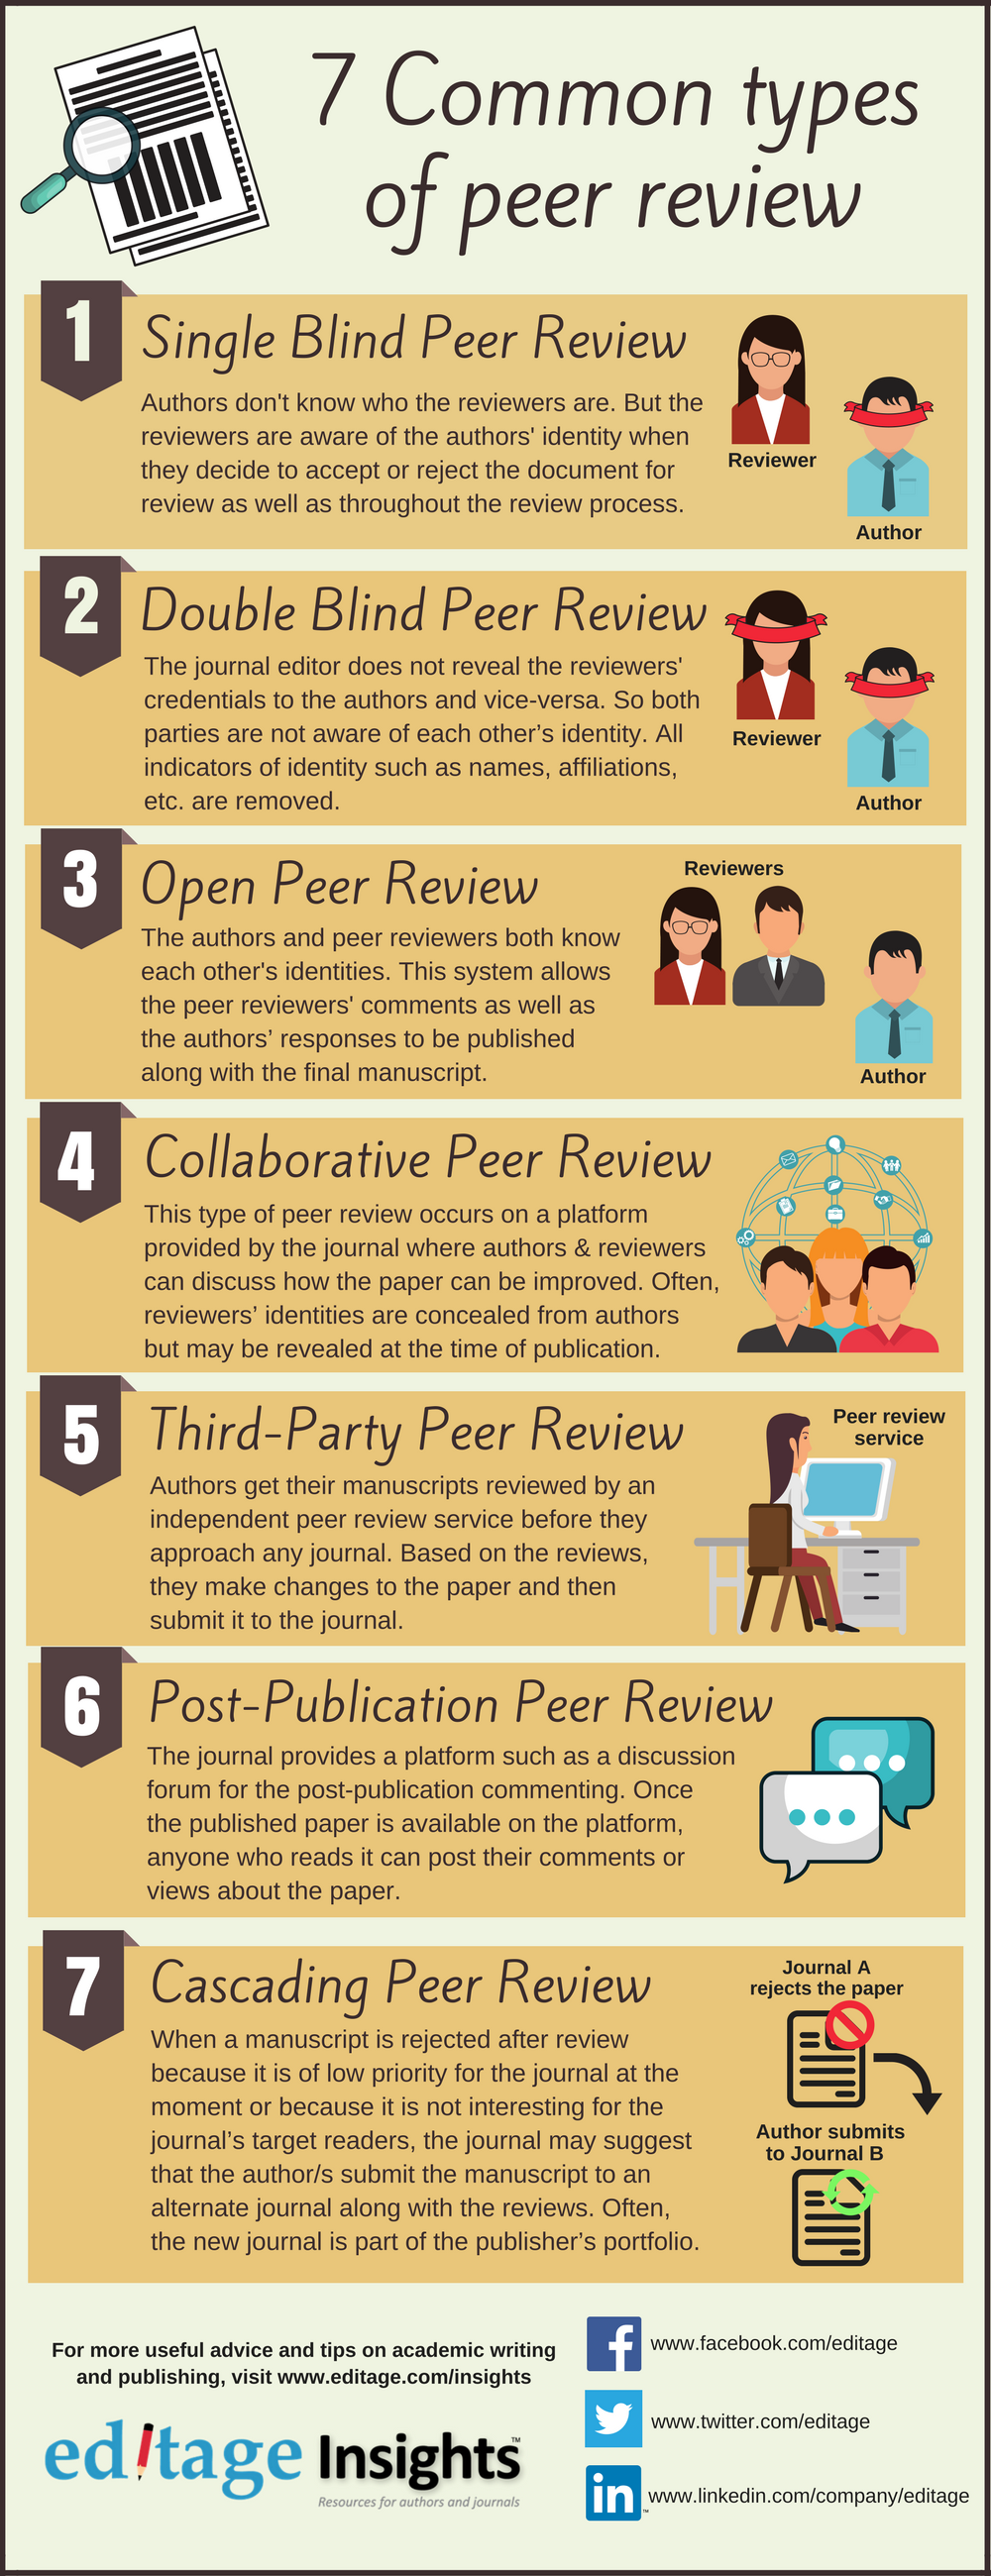 7 Common types of peer review